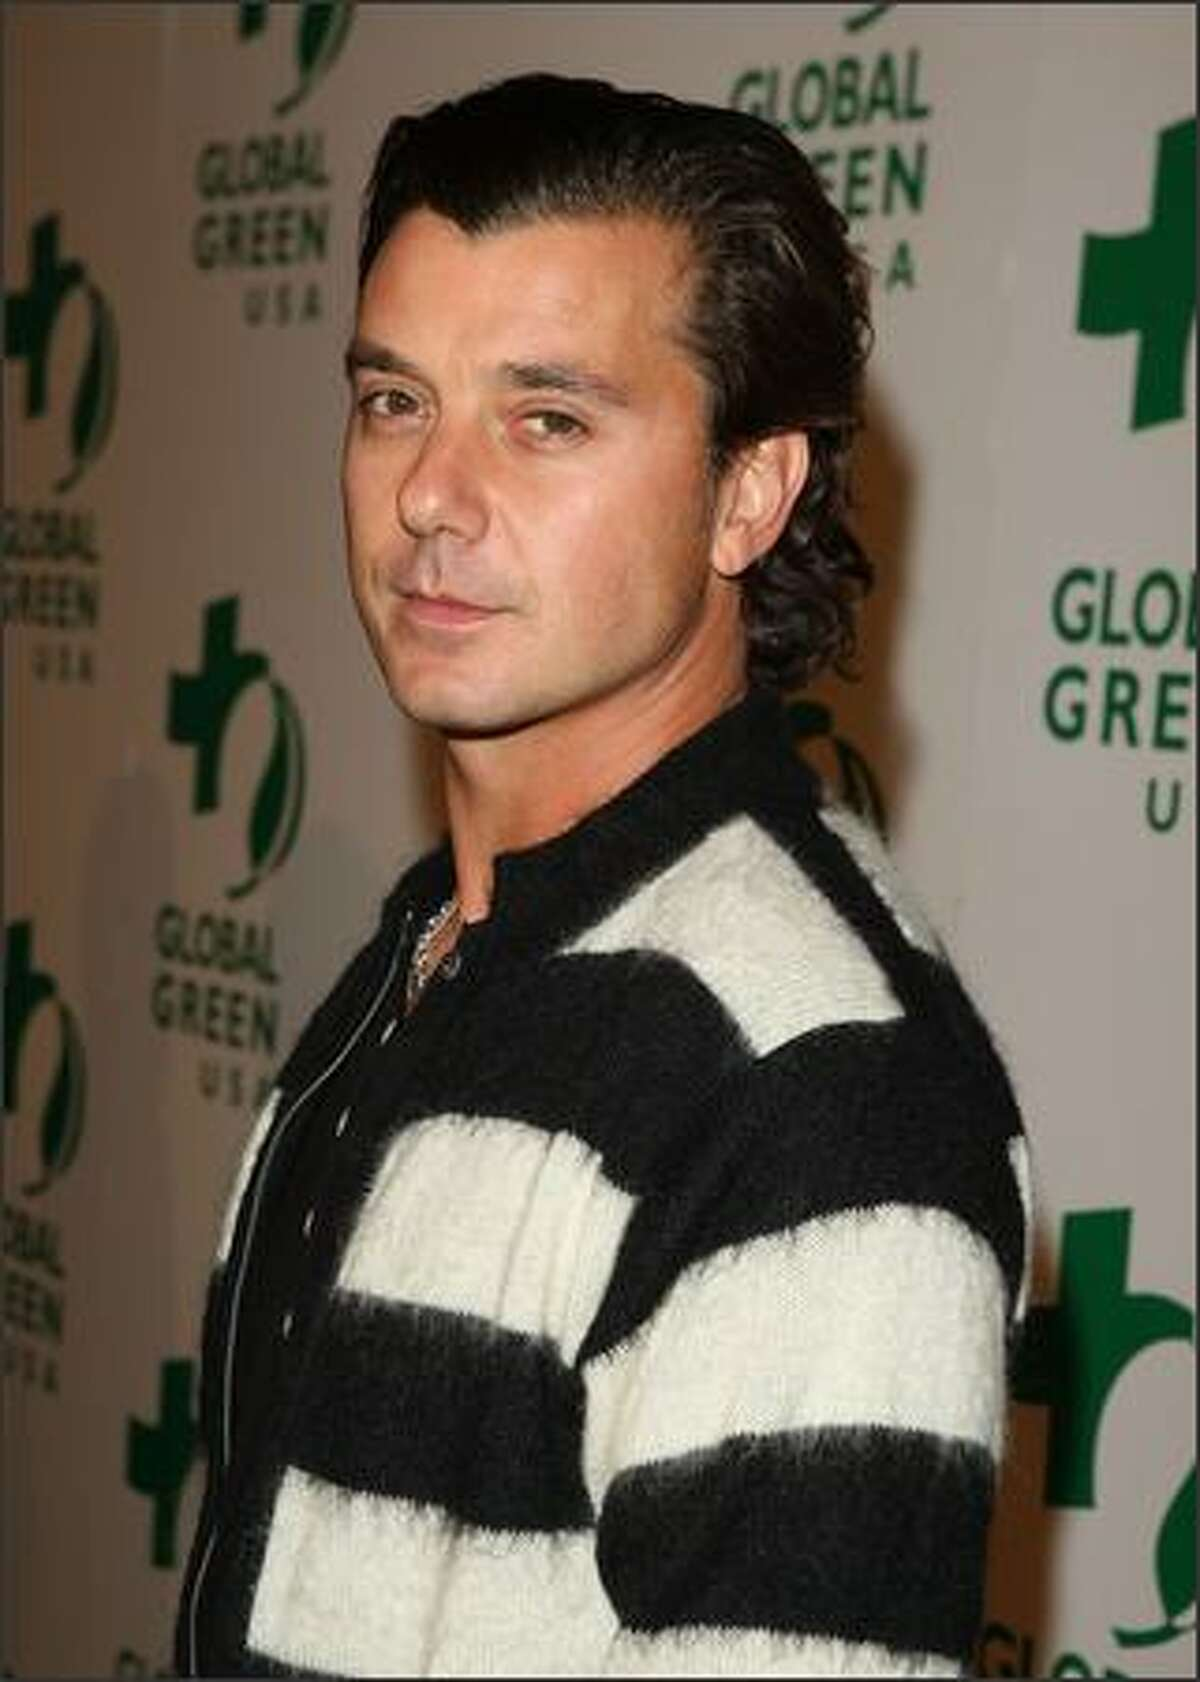 Musician Gavin Rossdale arrives at Global Green USA's 6th Annual Pre-Oscar Party held at Avalon Hollwood in Hollywood, California.